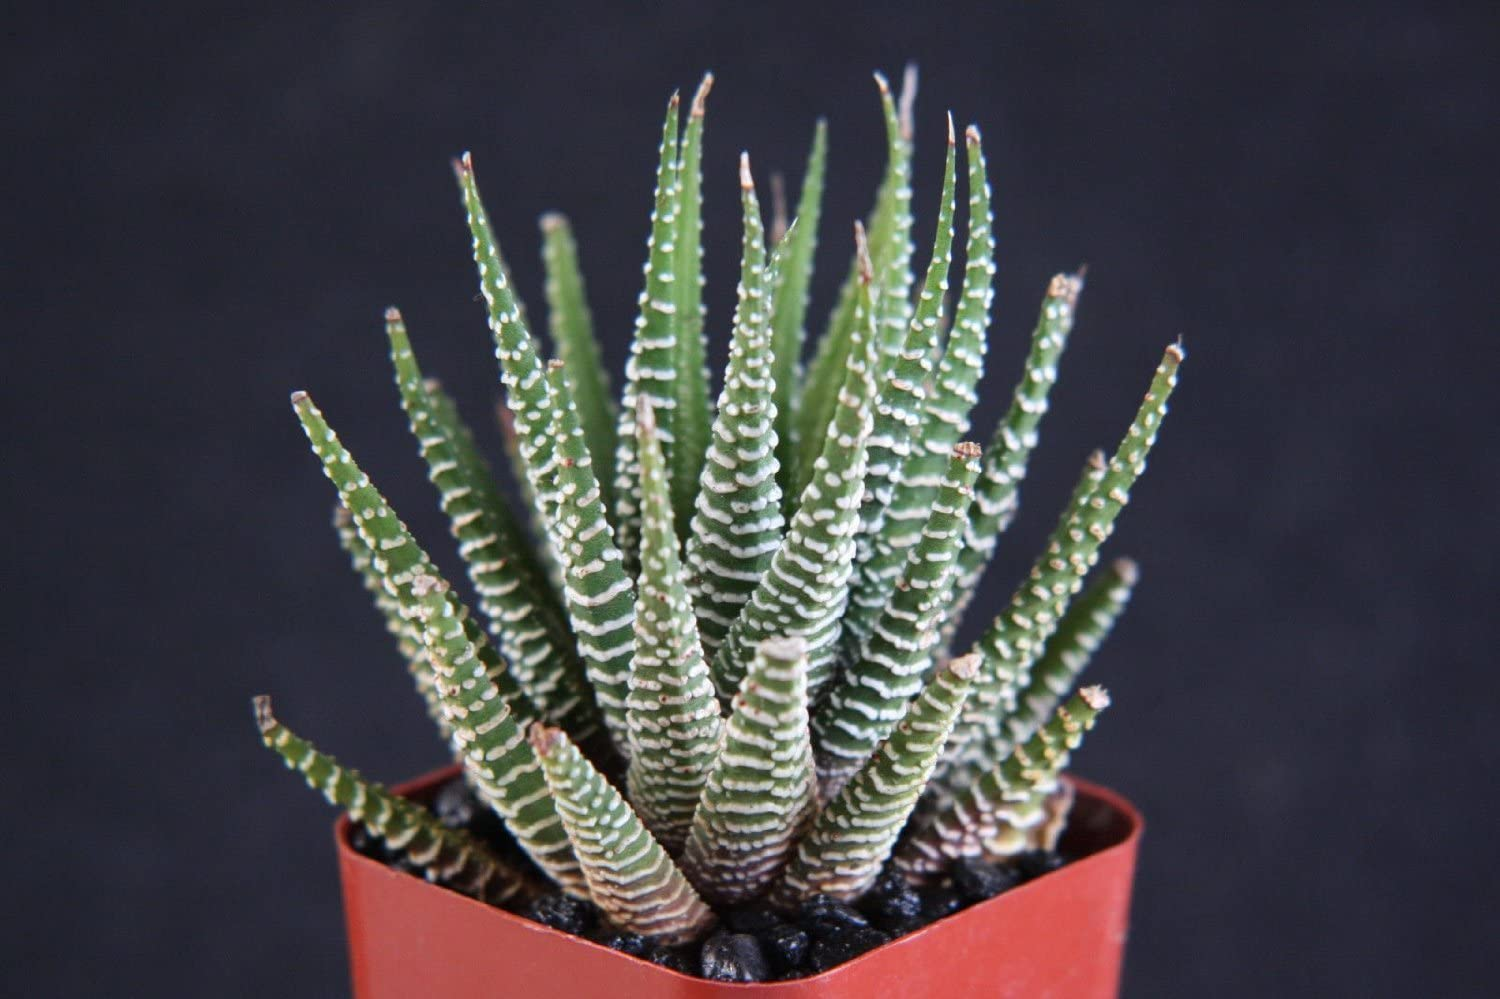 Haworthia Plant Care How To Grow Maintain Haworthia Plants Apartment Therapy